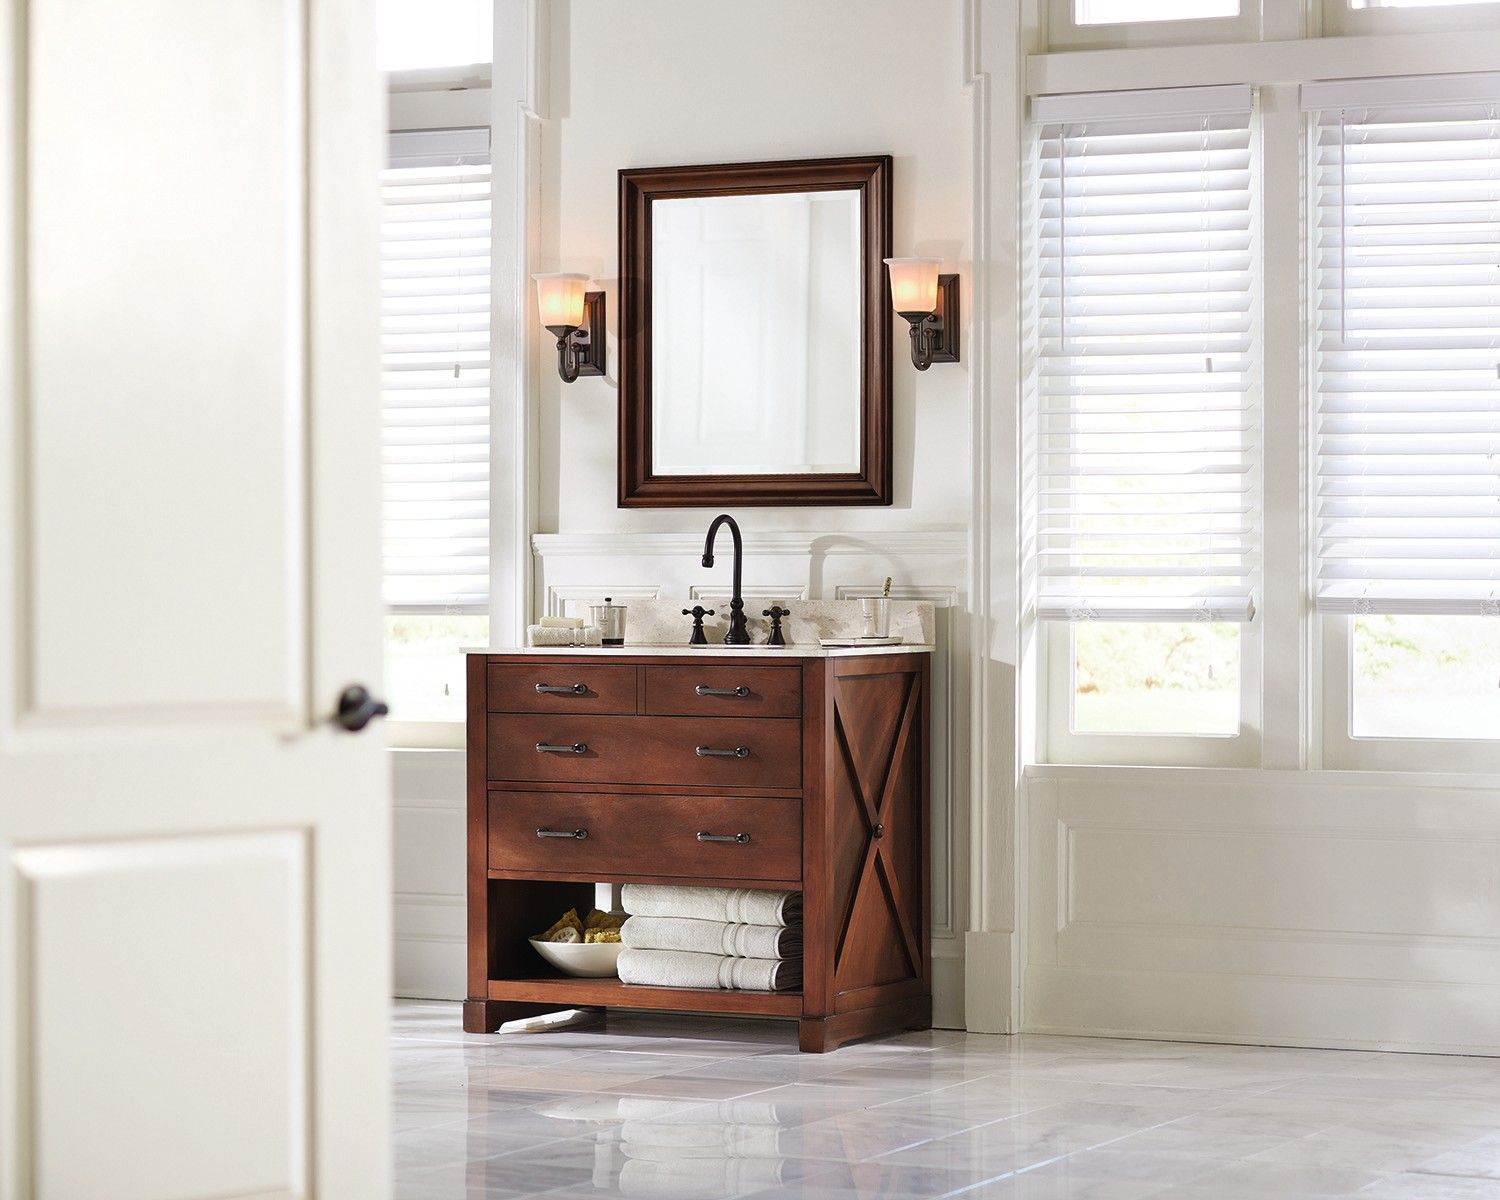 What is the most important thing you look for in a bathroom vanity ...